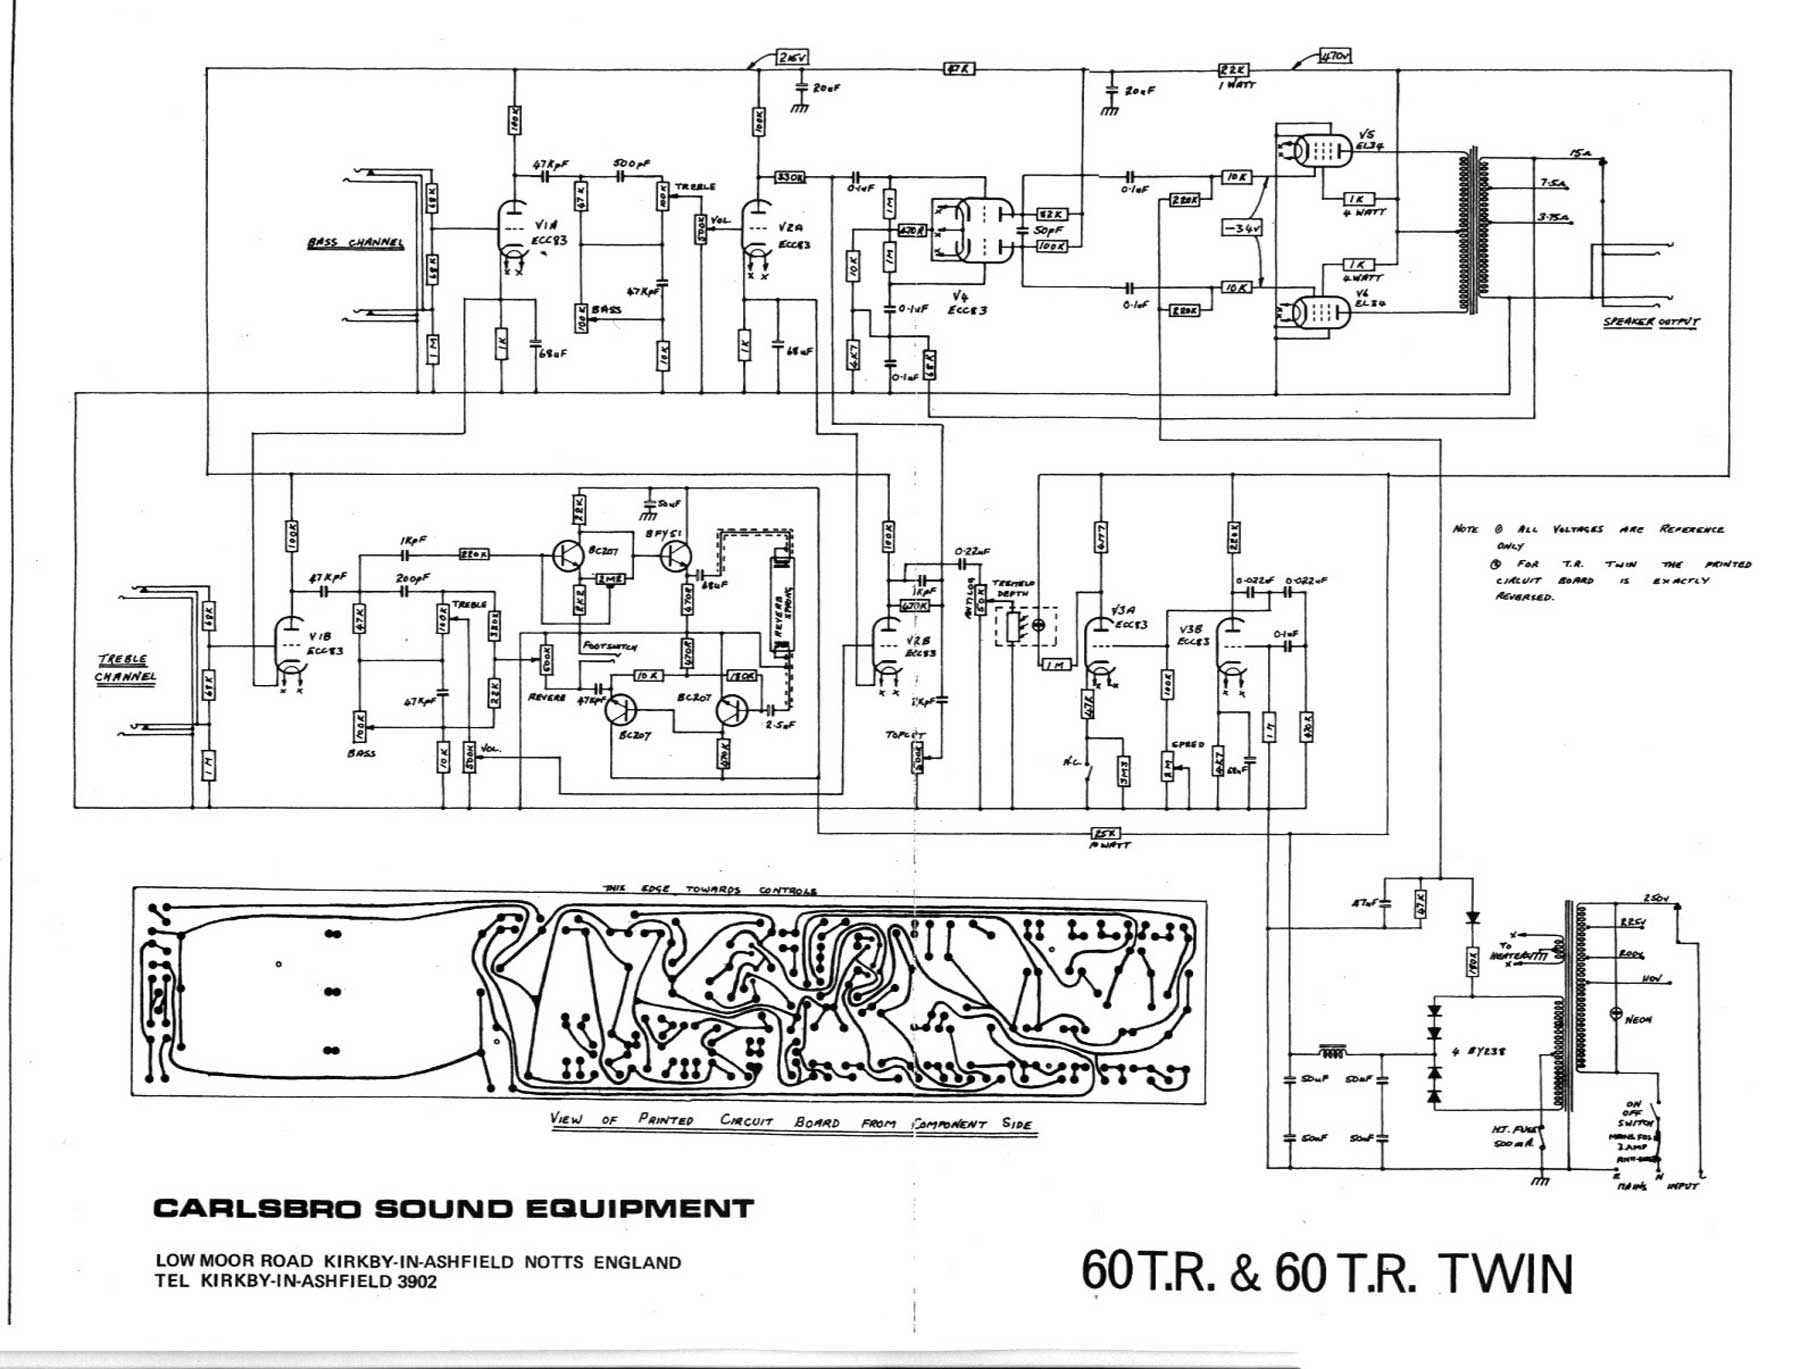 carlsbro 60 t r and 60 t r twin amp schematic. Black Bedroom Furniture Sets. Home Design Ideas